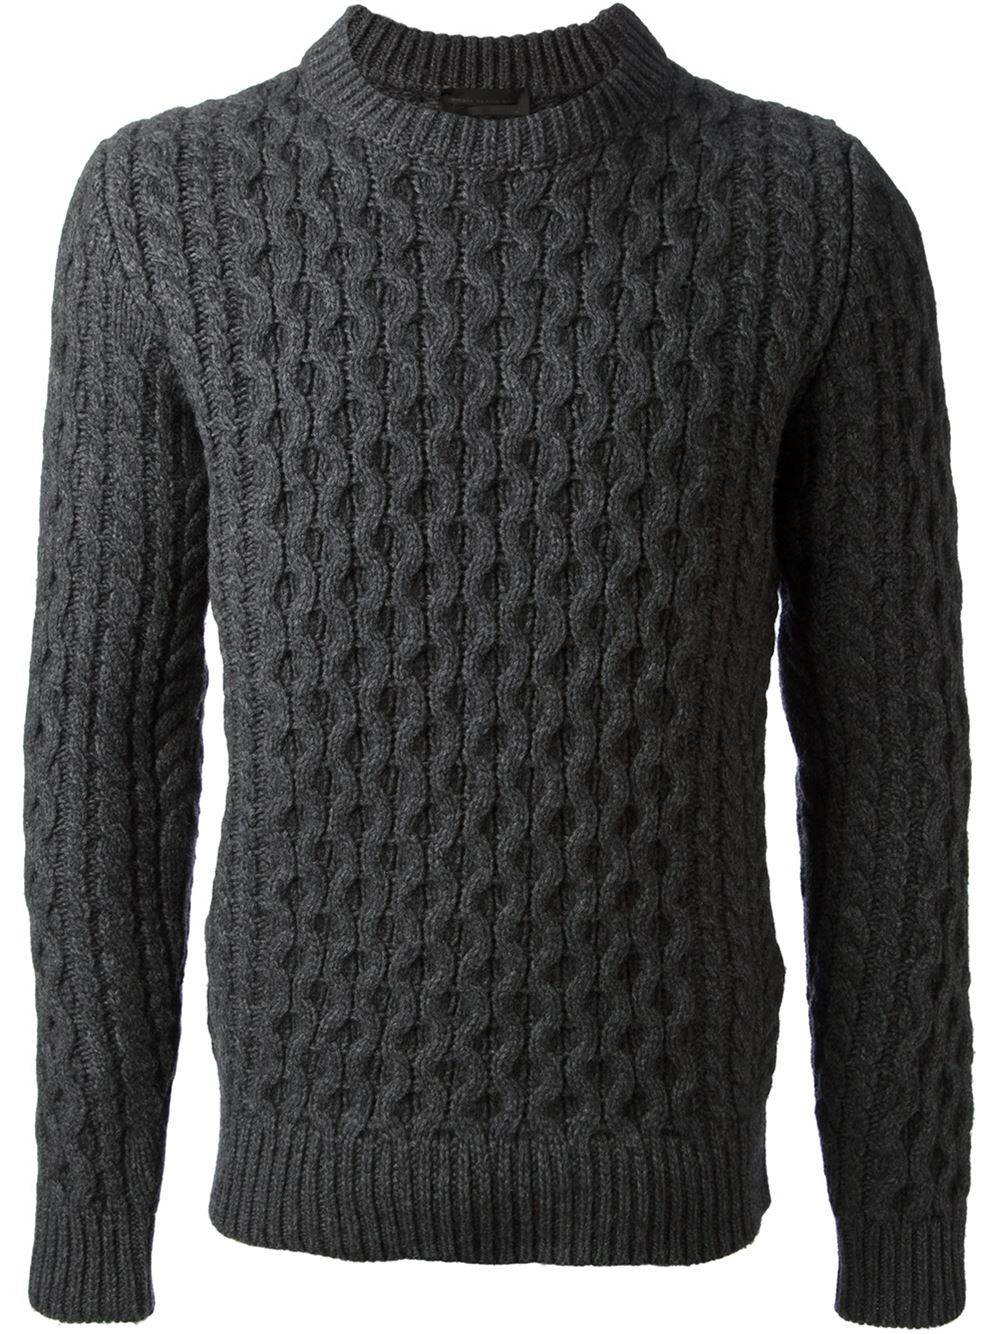 Diesel black gold Cable Knit Sweater in Gray for Men | Lyst